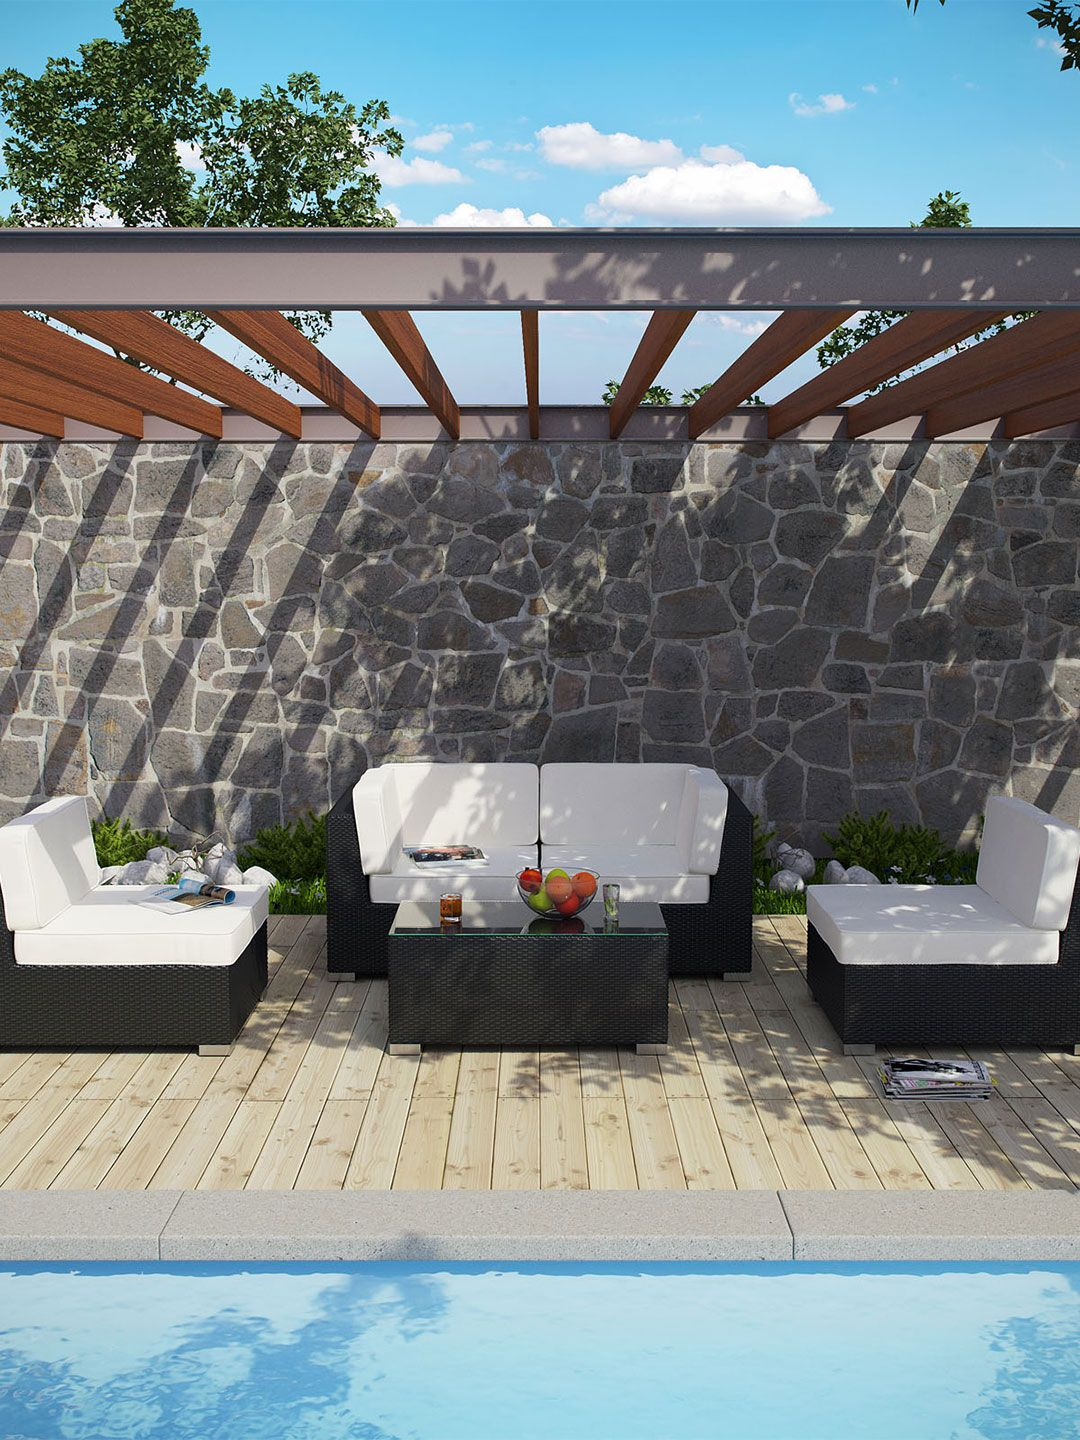 la plata outdoor sectional set ( pc) by pearl river modern ca at  - la plata outdoor sectional set ( pc) by pearl river modern ca at gilt